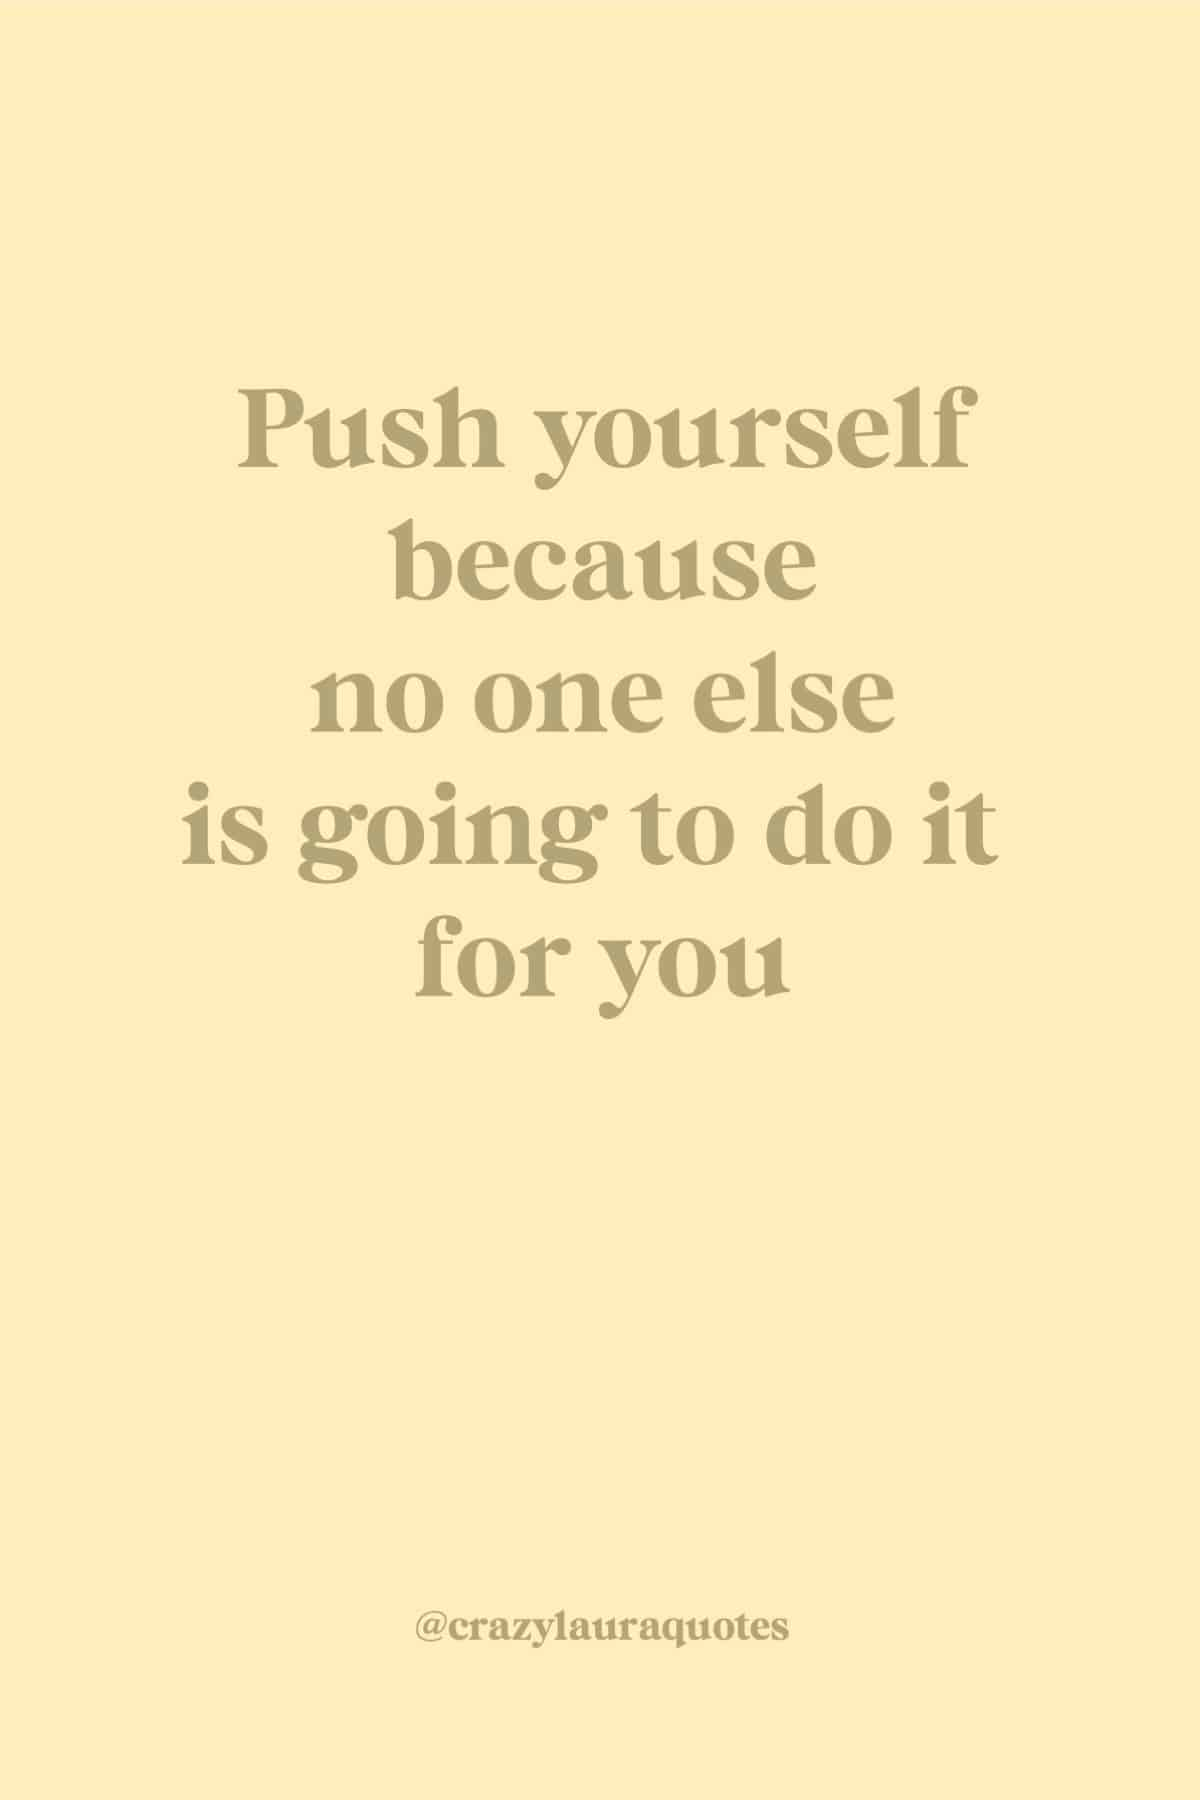 short quote about pushing yourself